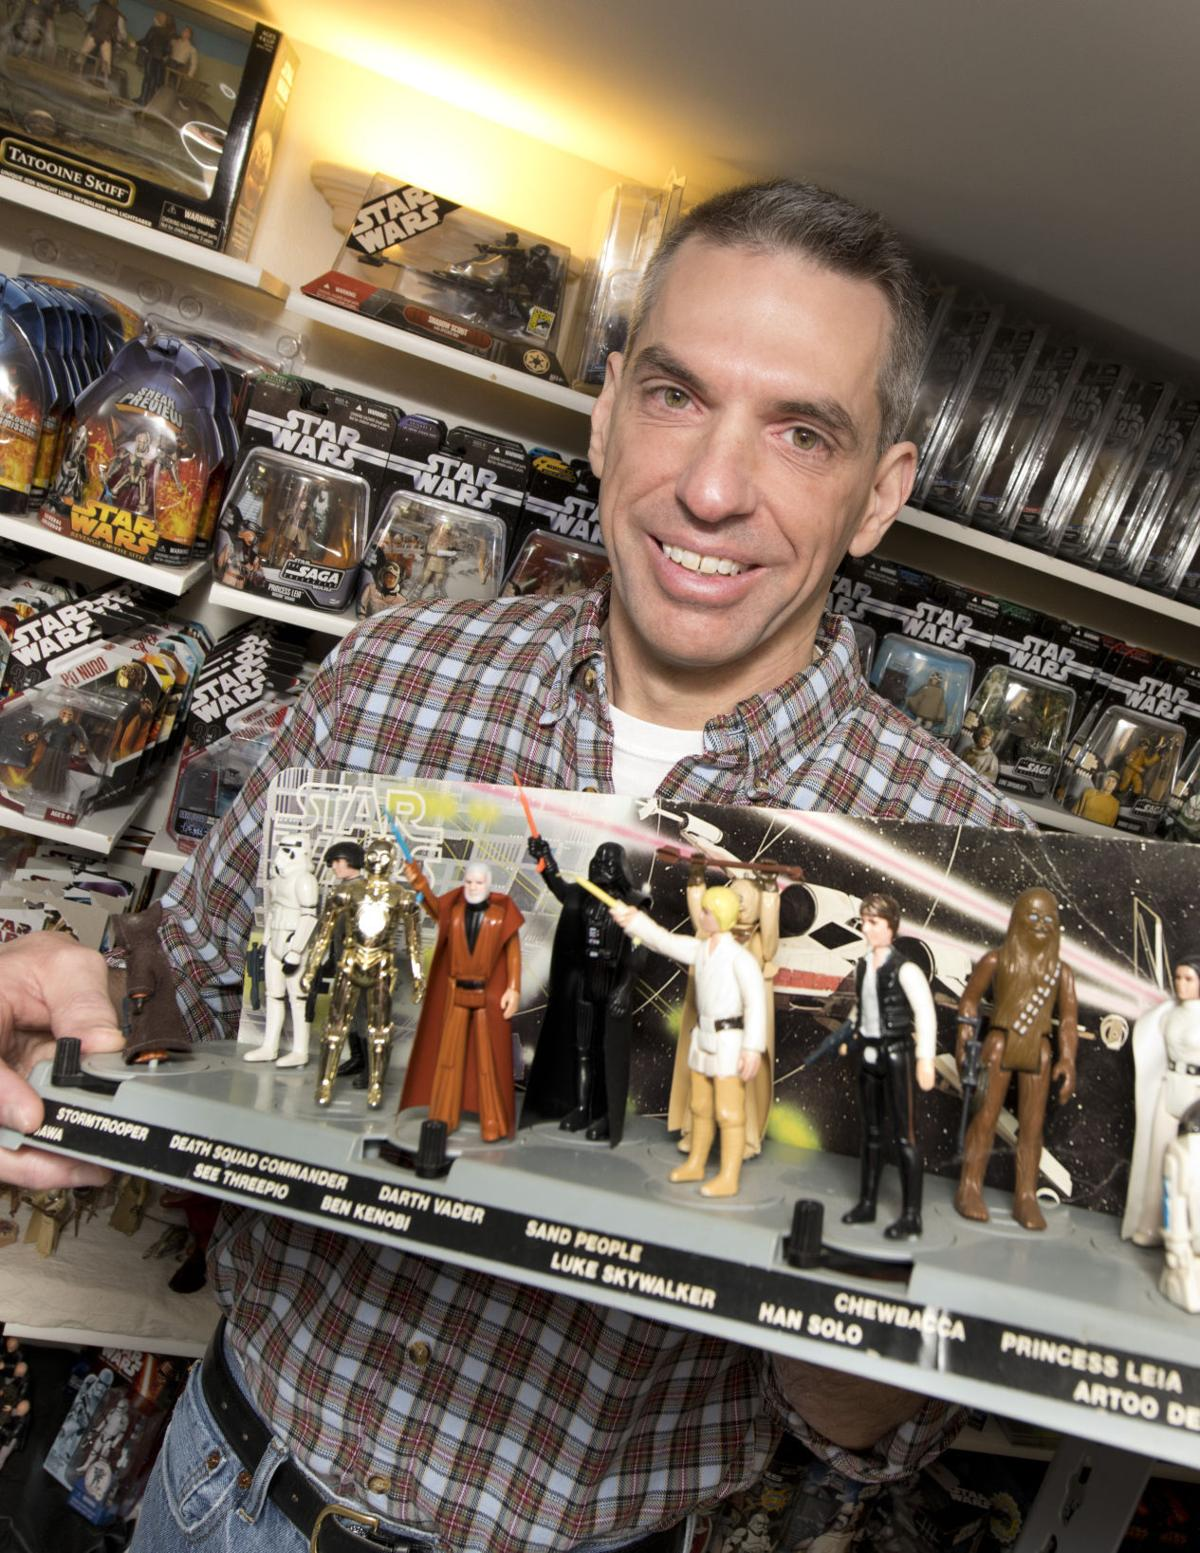 Star War collector Randy Van Peursem